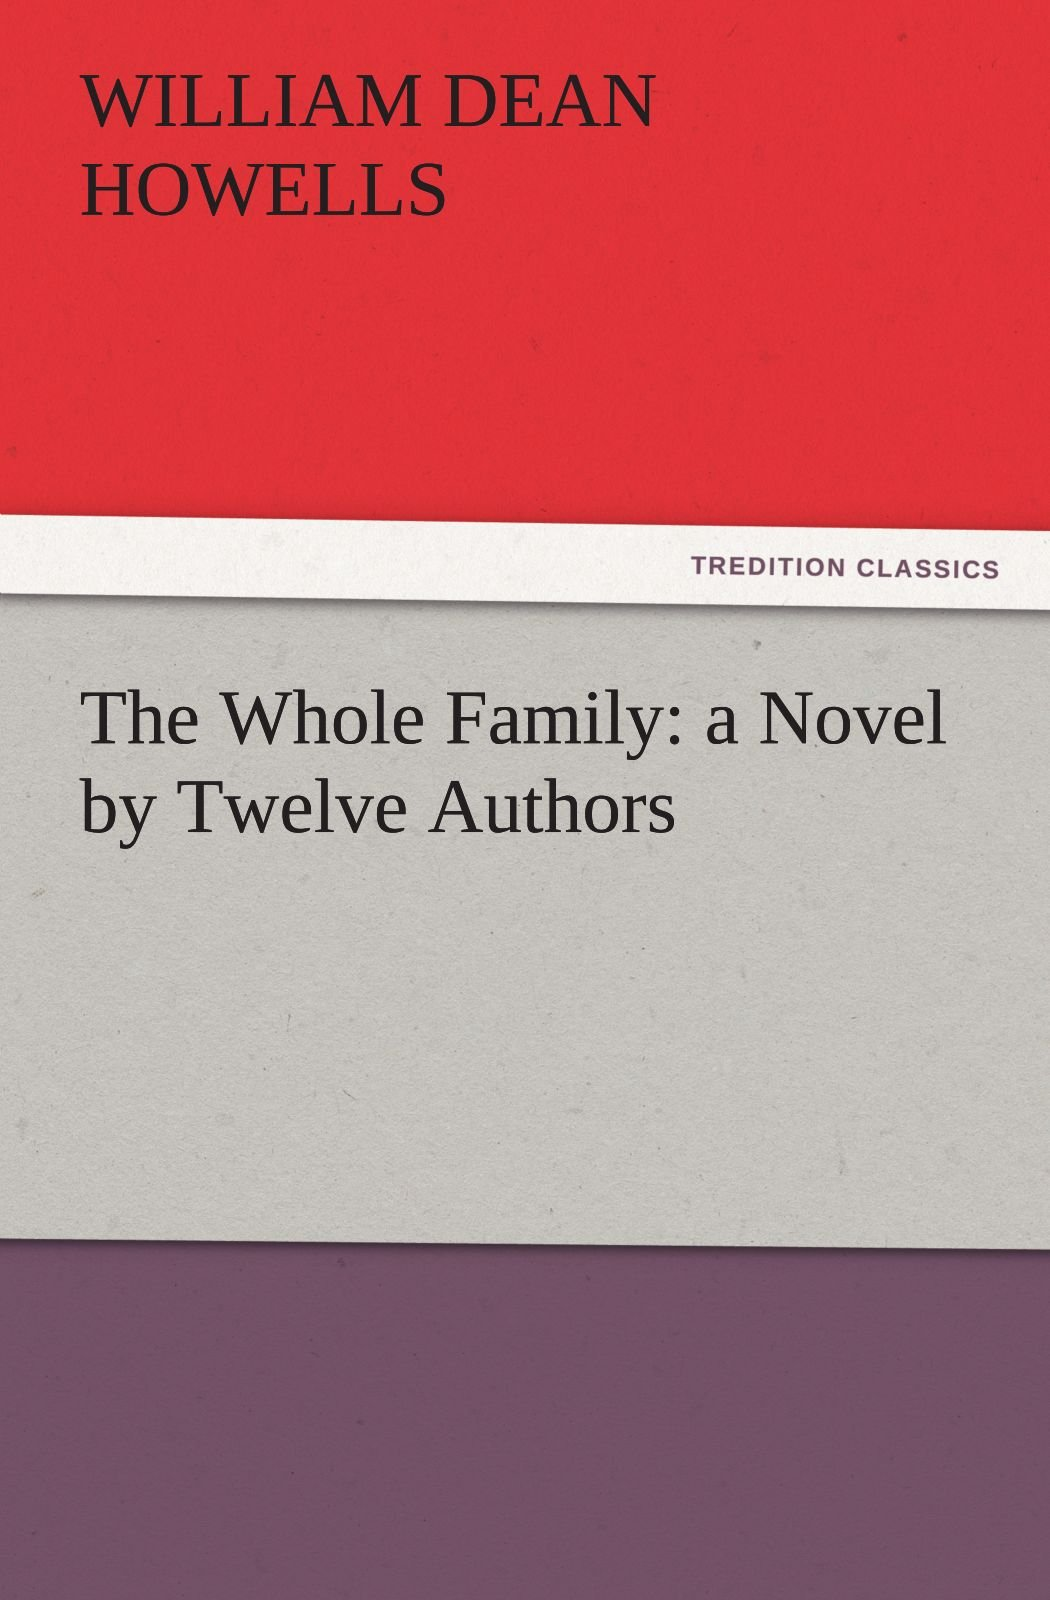 Download The Whole Family: a Novel by Twelve Authors (TREDITION CLASSICS) ebook